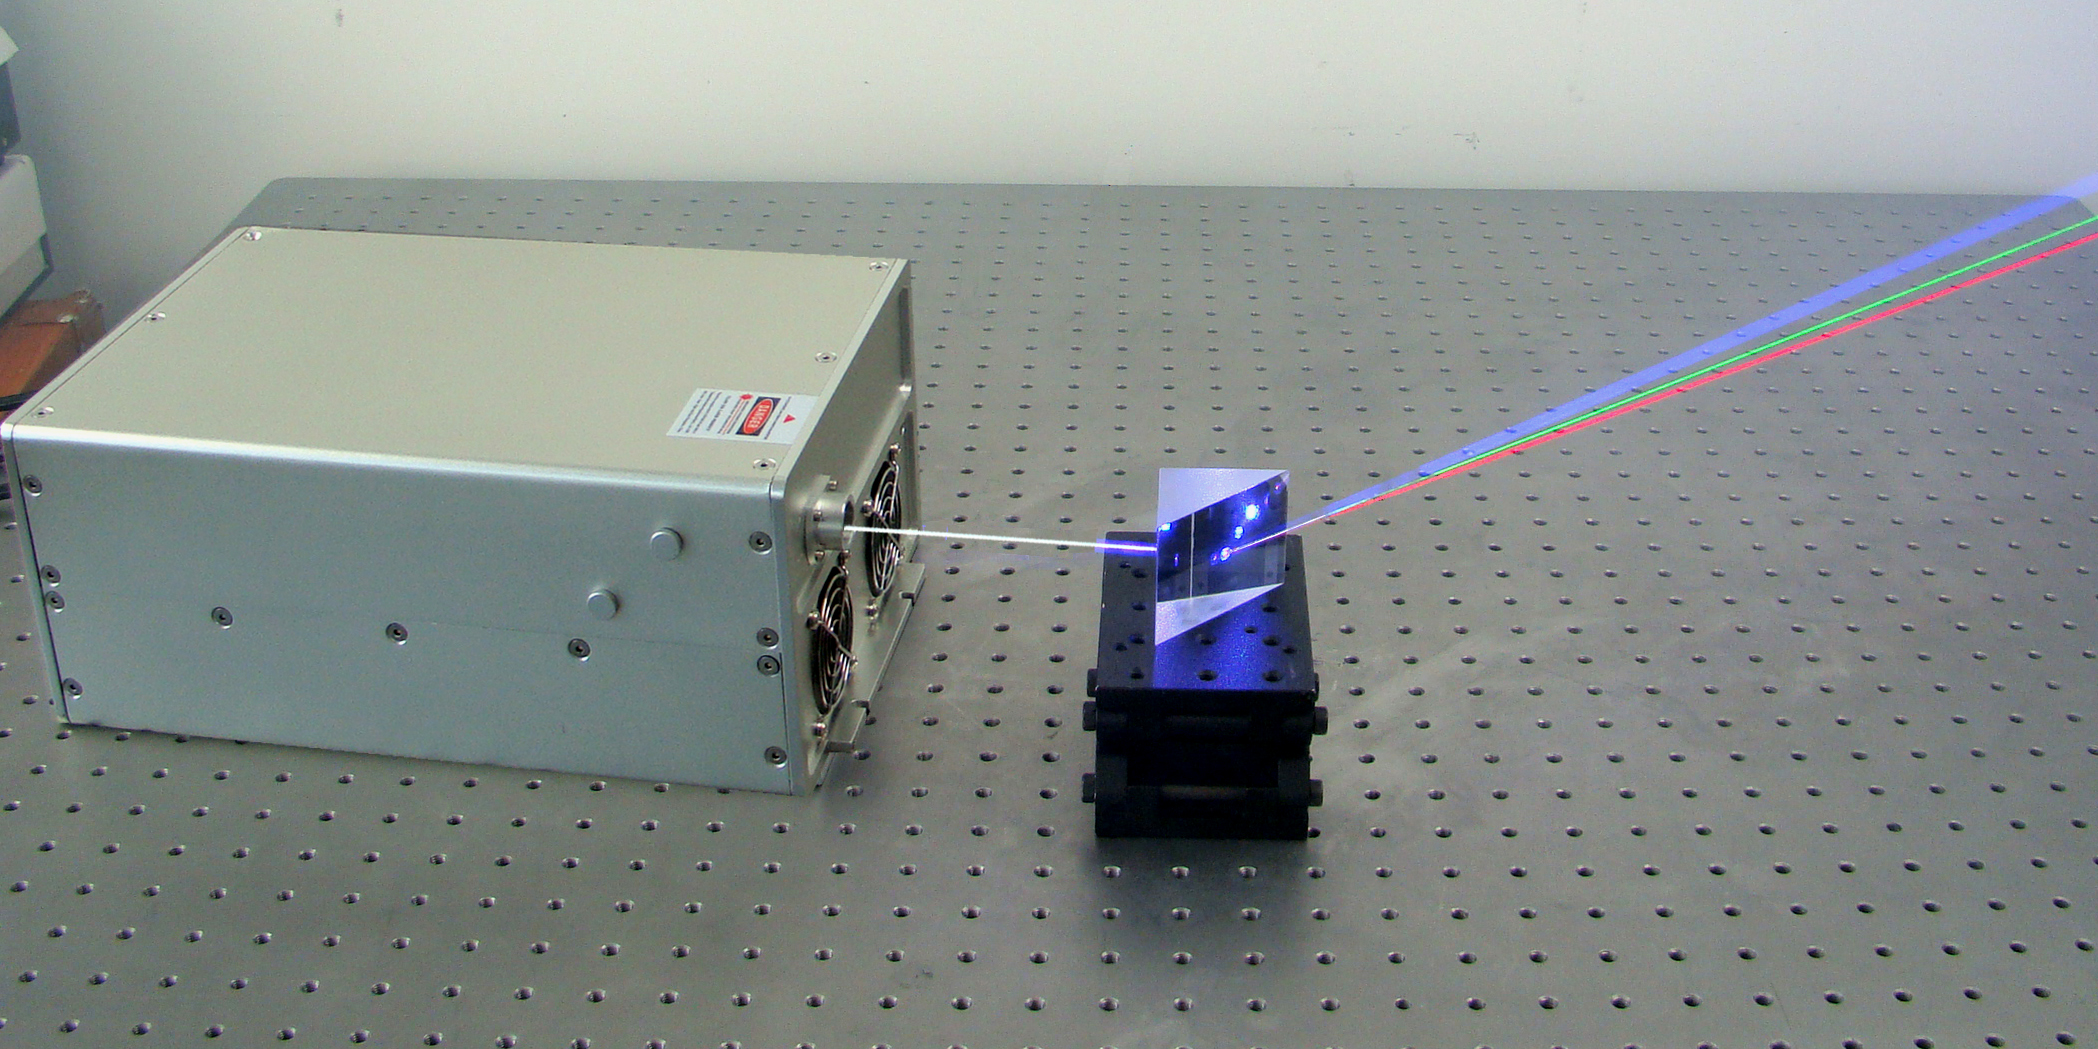 multi-wavelength fibre laser